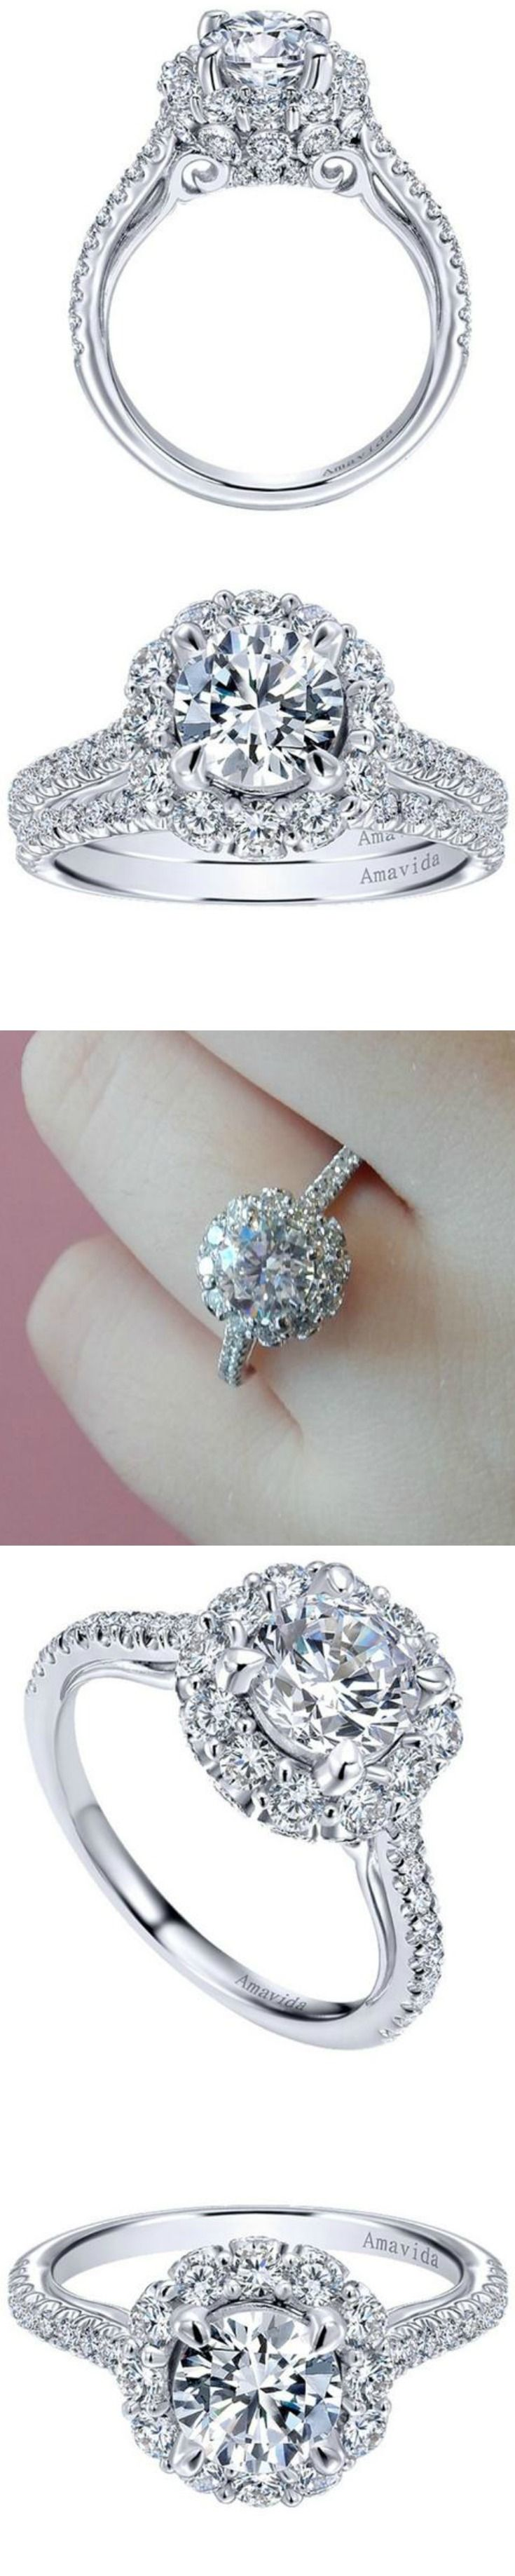 Amavida Diamond Engagement Ring from Gabriel and available at Ben Garelick http://ss1.us/a/SRI61axo